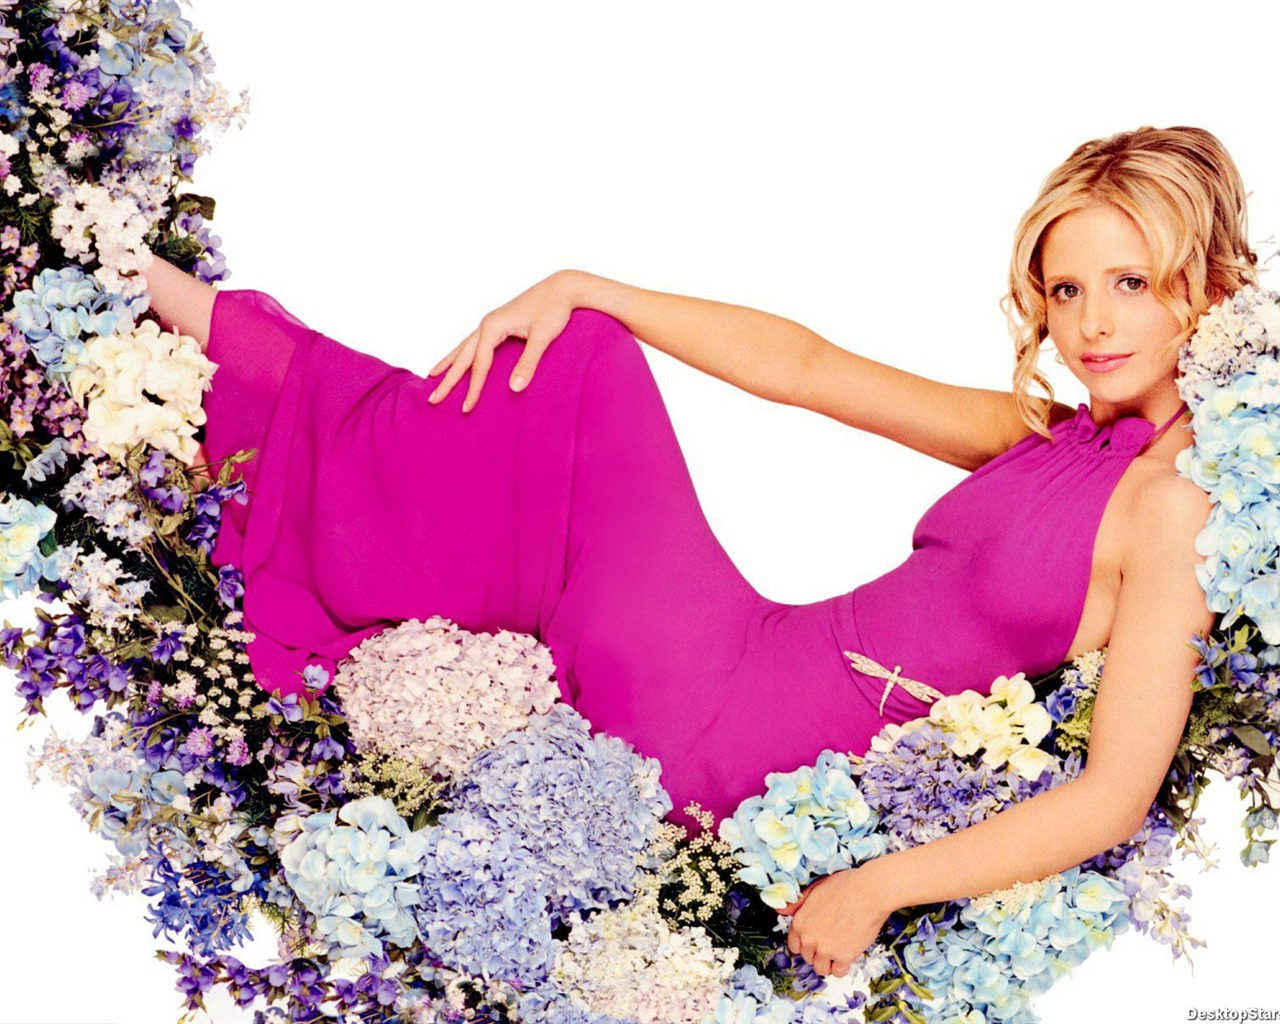 Sarah Michelle Gellar #056 - 1280x1024 Wallpapers Pictures Photos Images